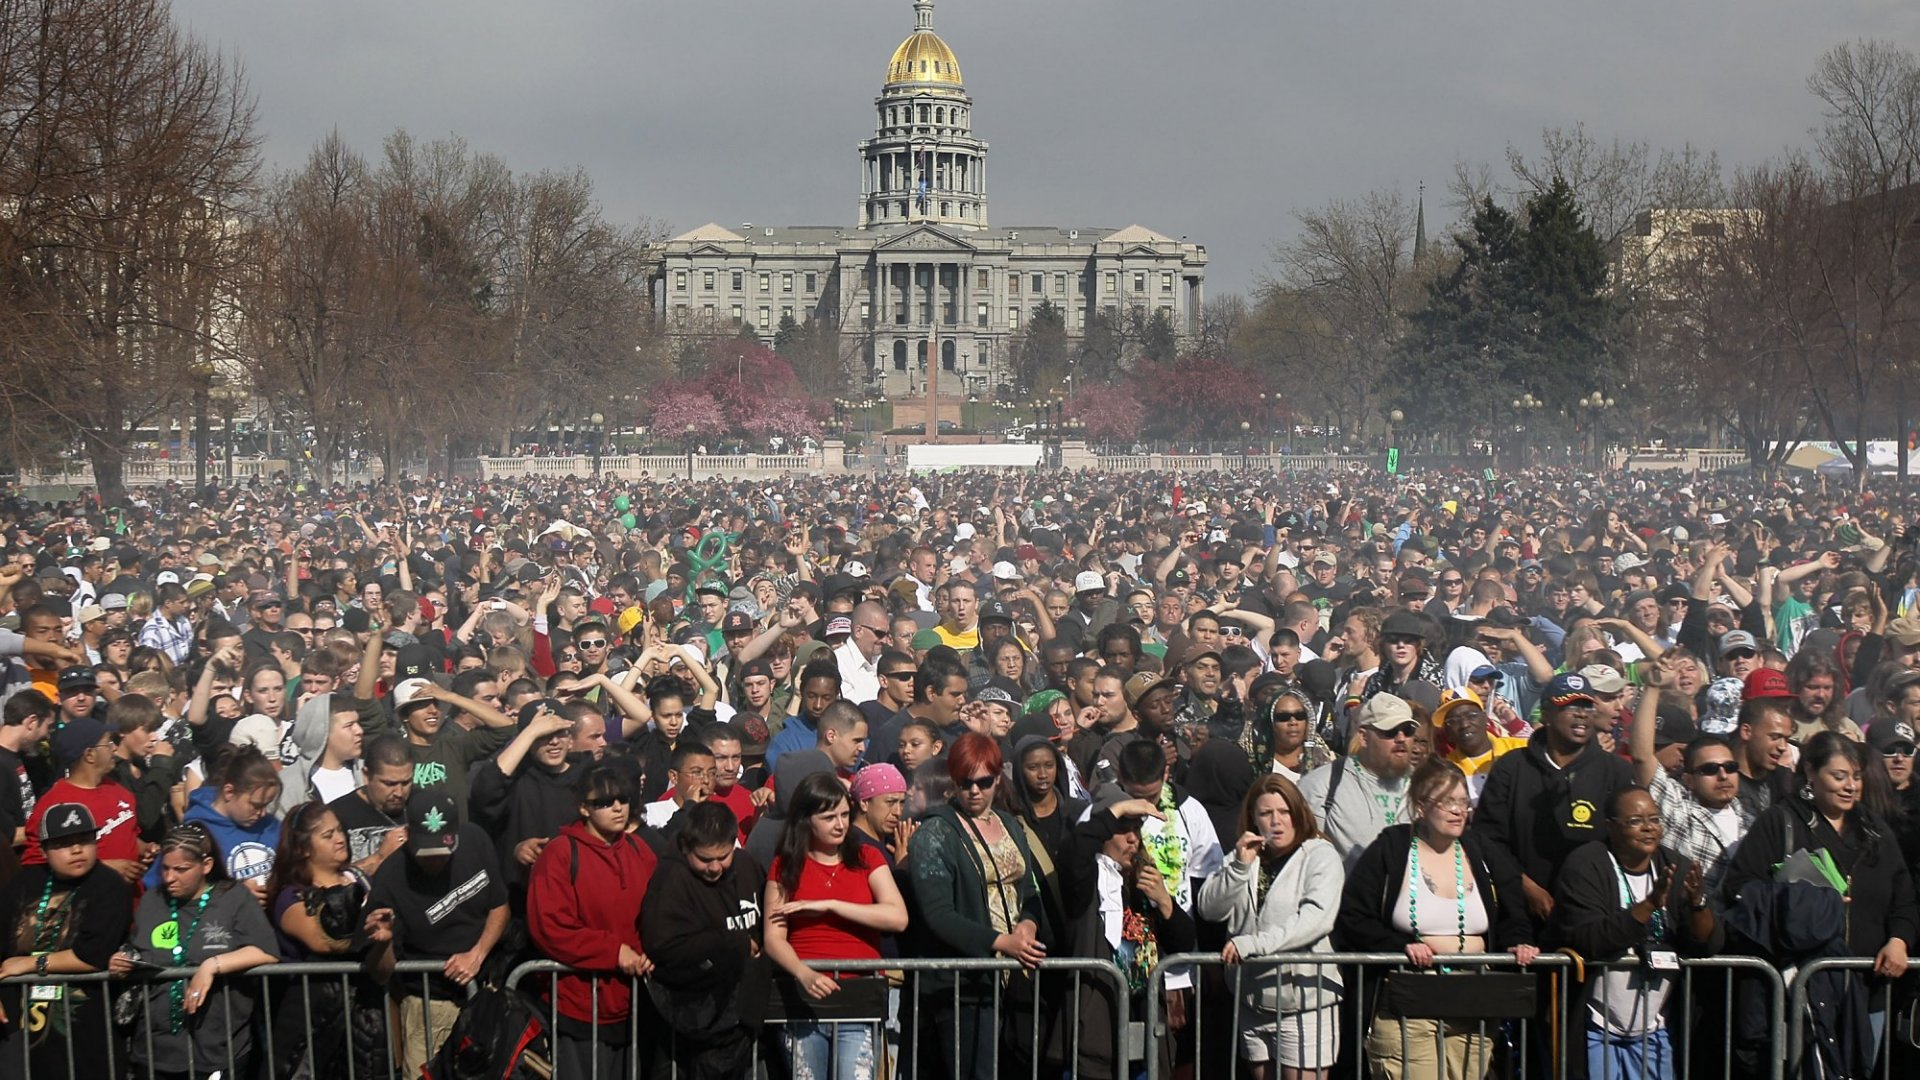 Thousands of people travel to states like Colorado to blaze it up on 4/20.